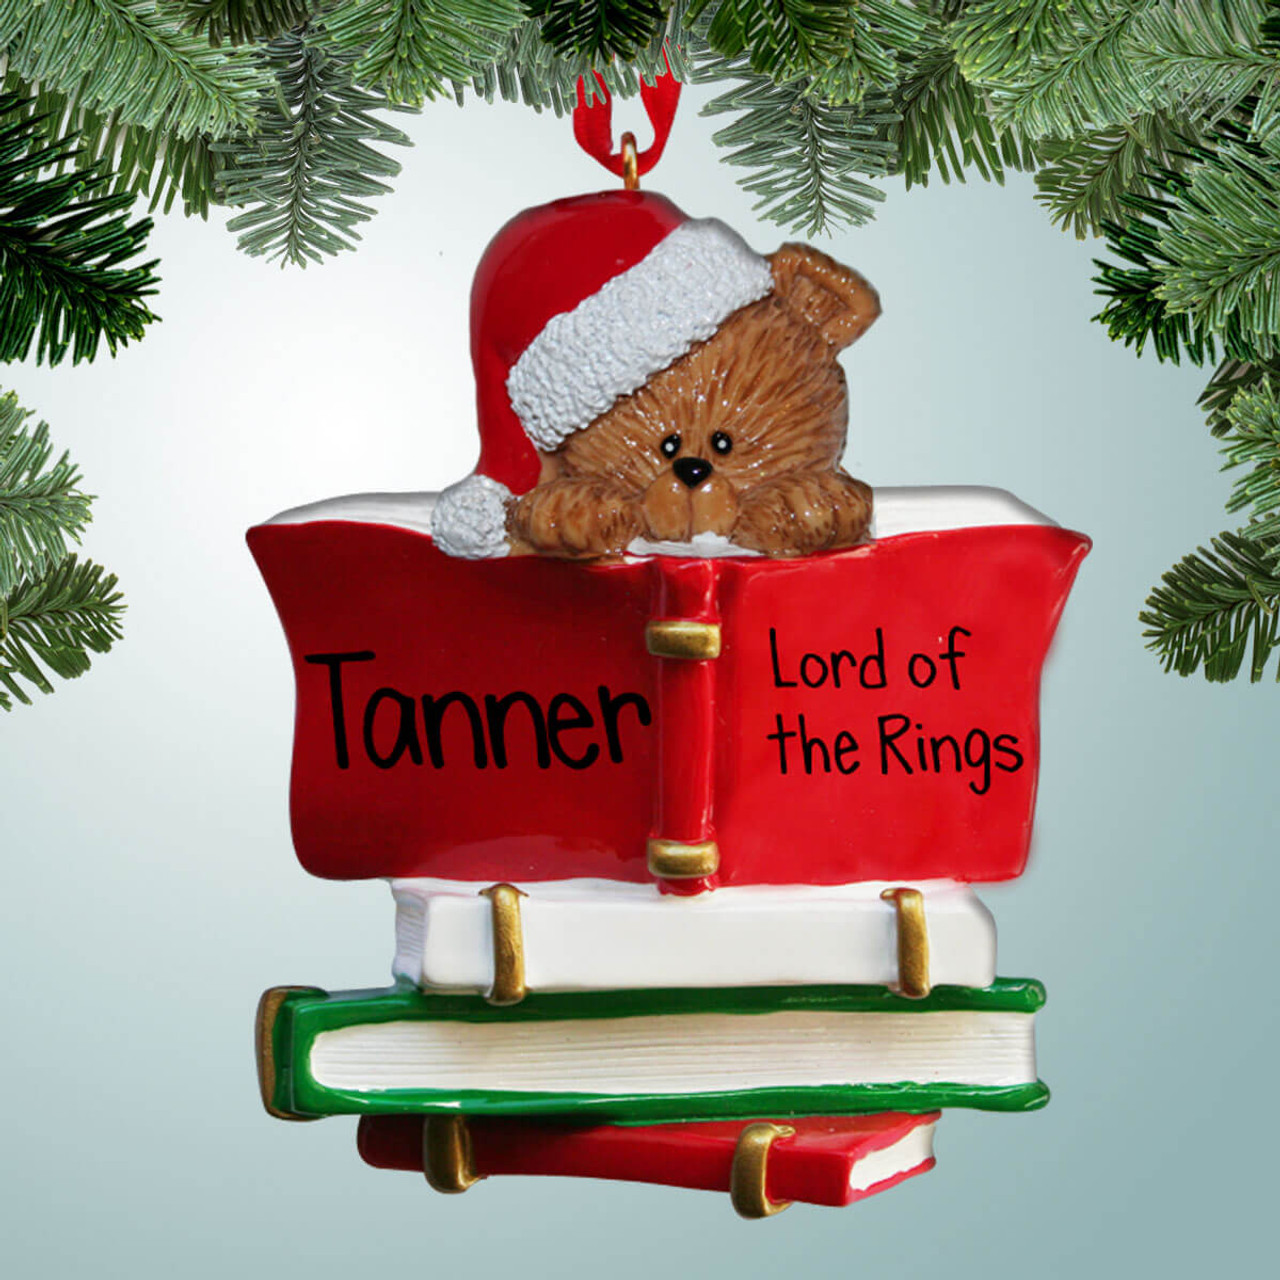 Lord Of The Rings Christmas Ornaments.Bear Bookworm